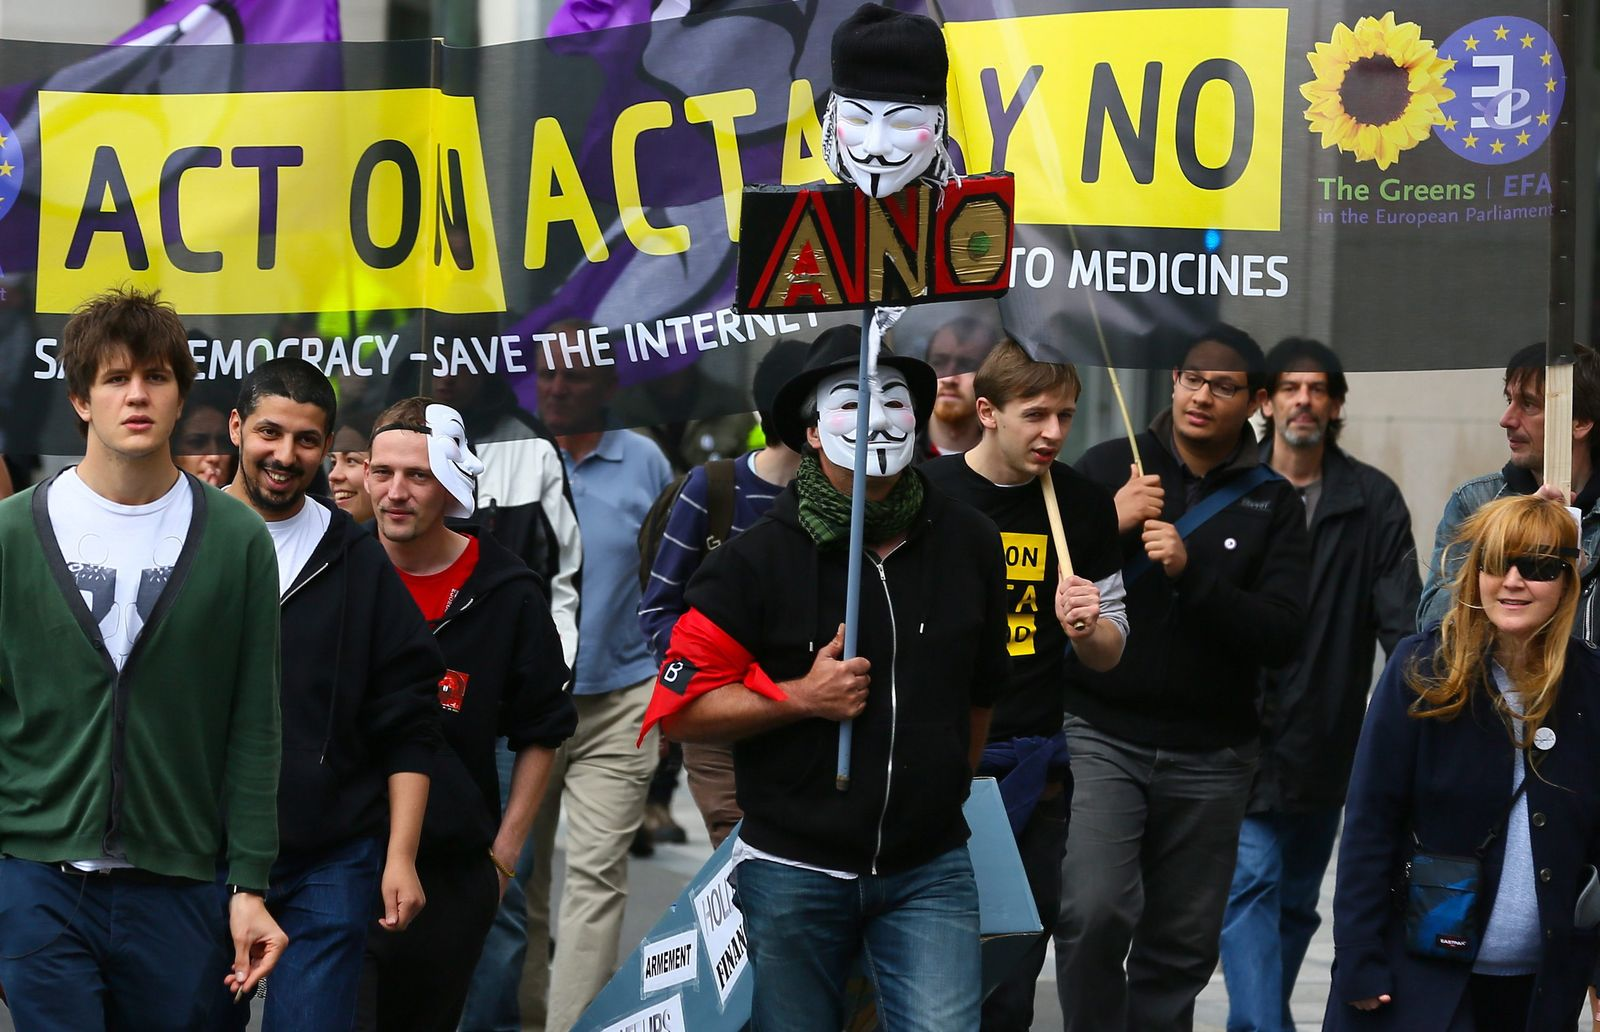 Anti-ACTA protest in Brussels